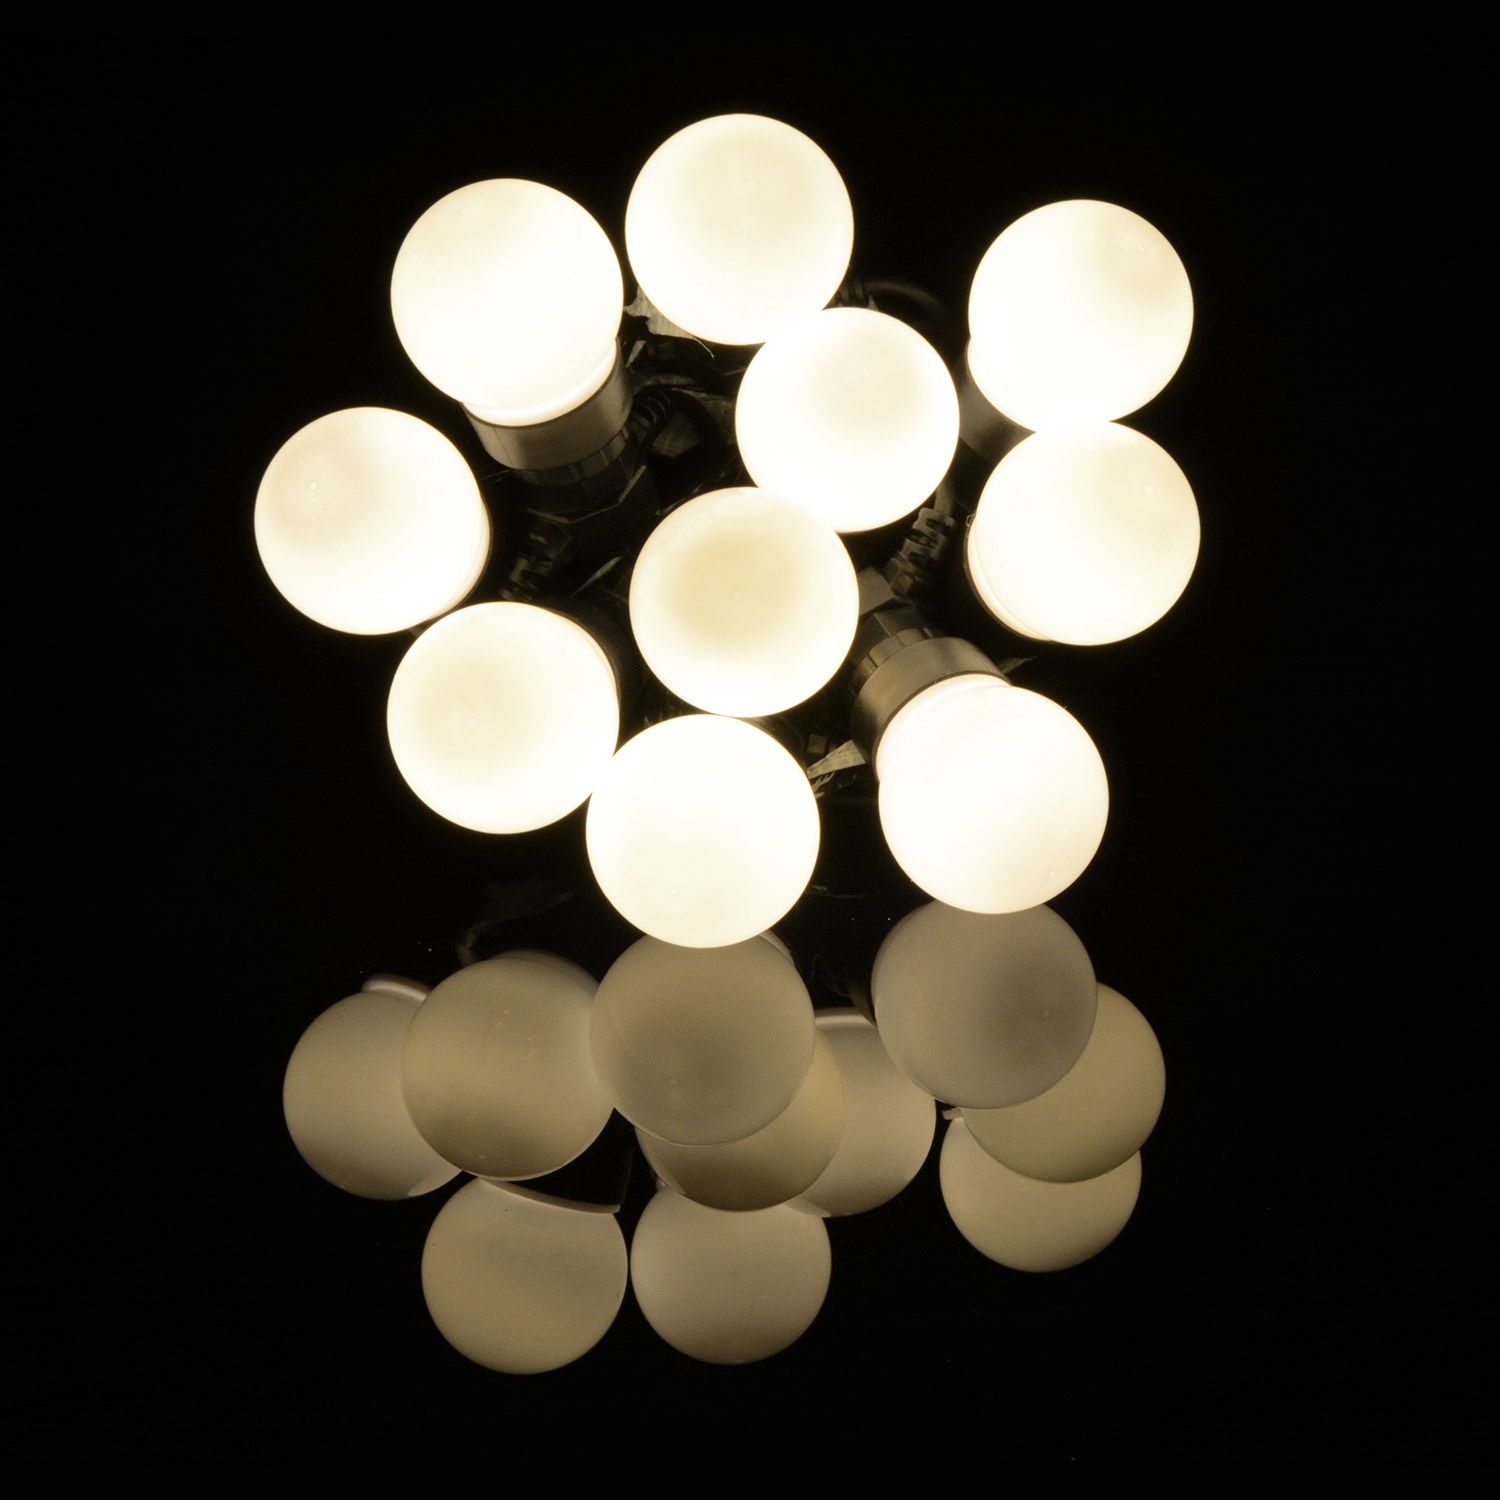 10 Bauble Indoor Festoon Warm White